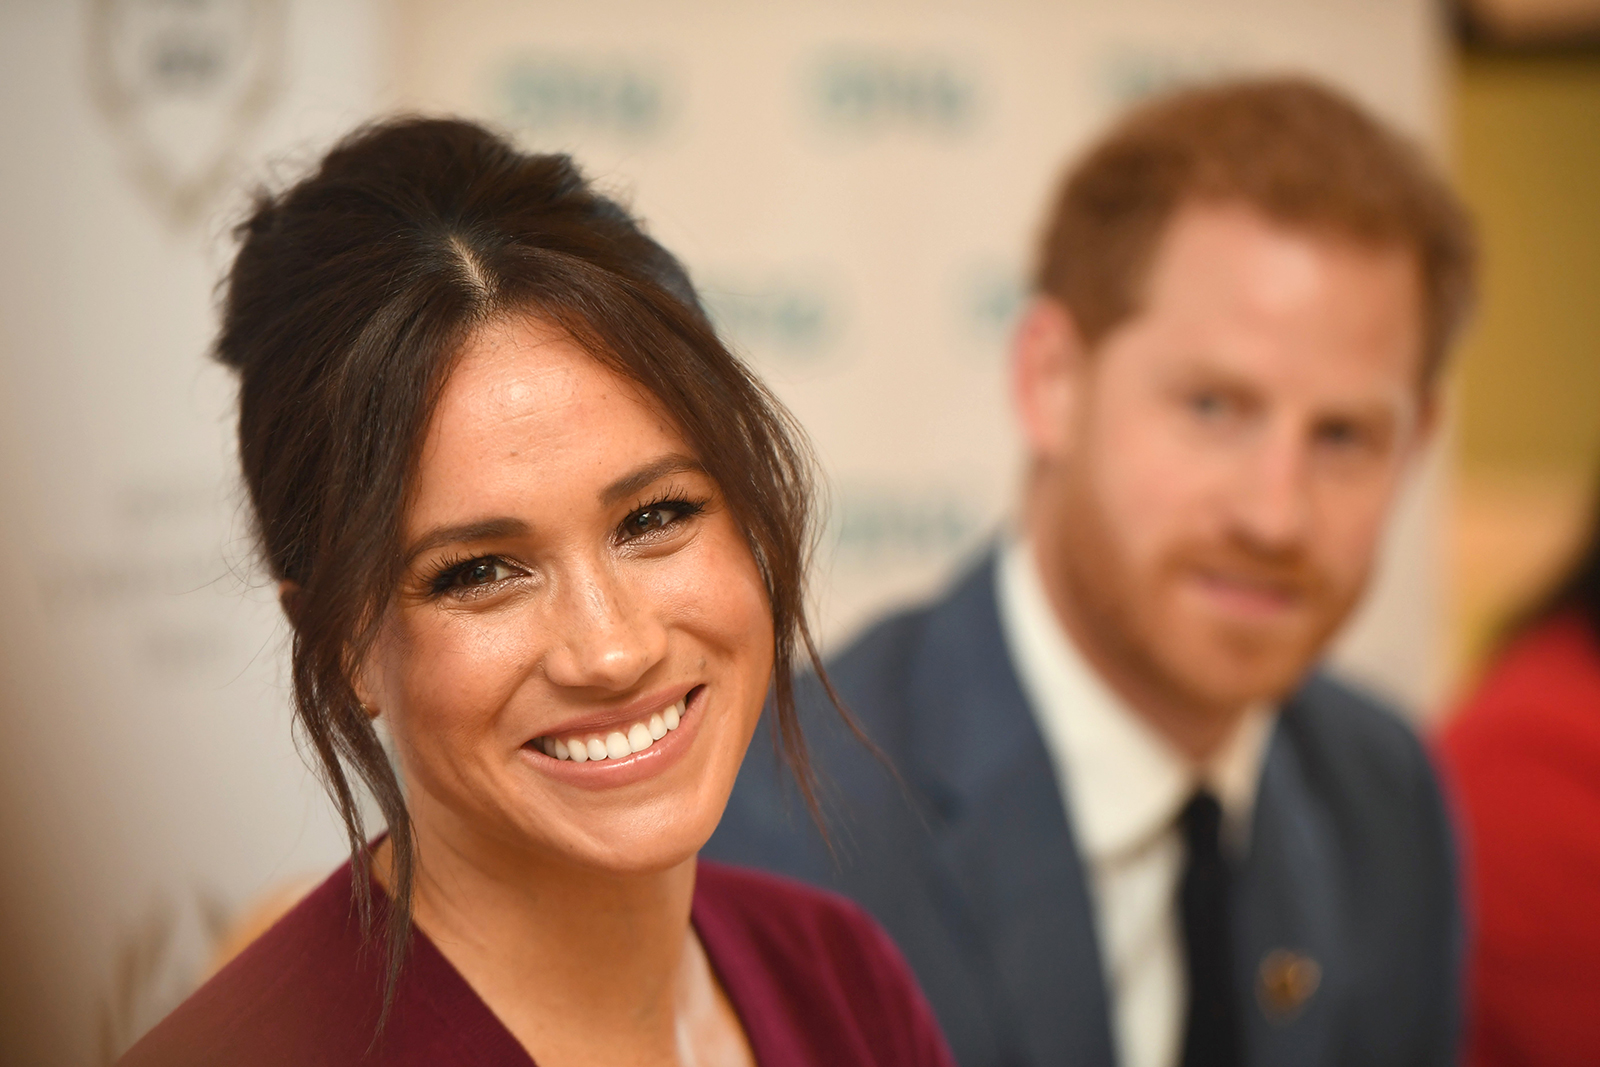 Why Meghan Markle wanted to interview The 19th*'s Emily Ramshaw